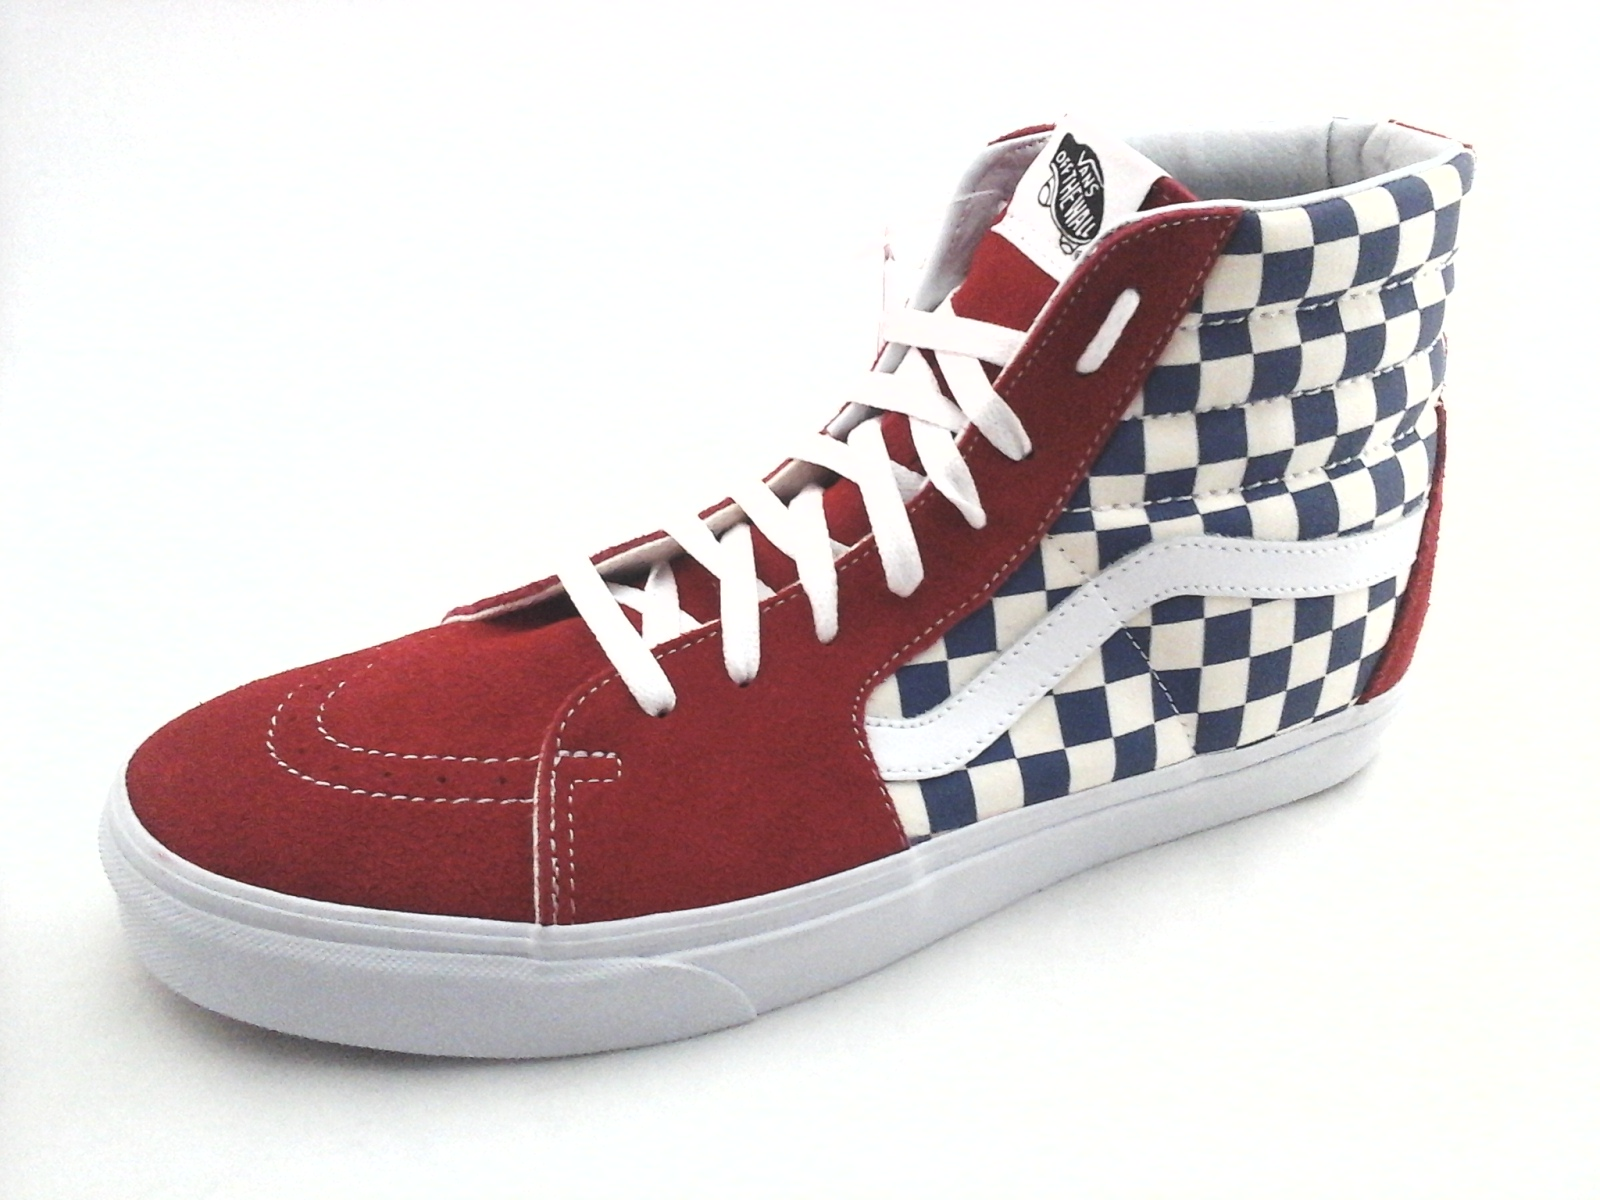 d74f81e960 Details about VANS Shoes SK8 Hi BMX Checkerboard Red Suede w Blue Cream Mens  US 13 EU 47 New